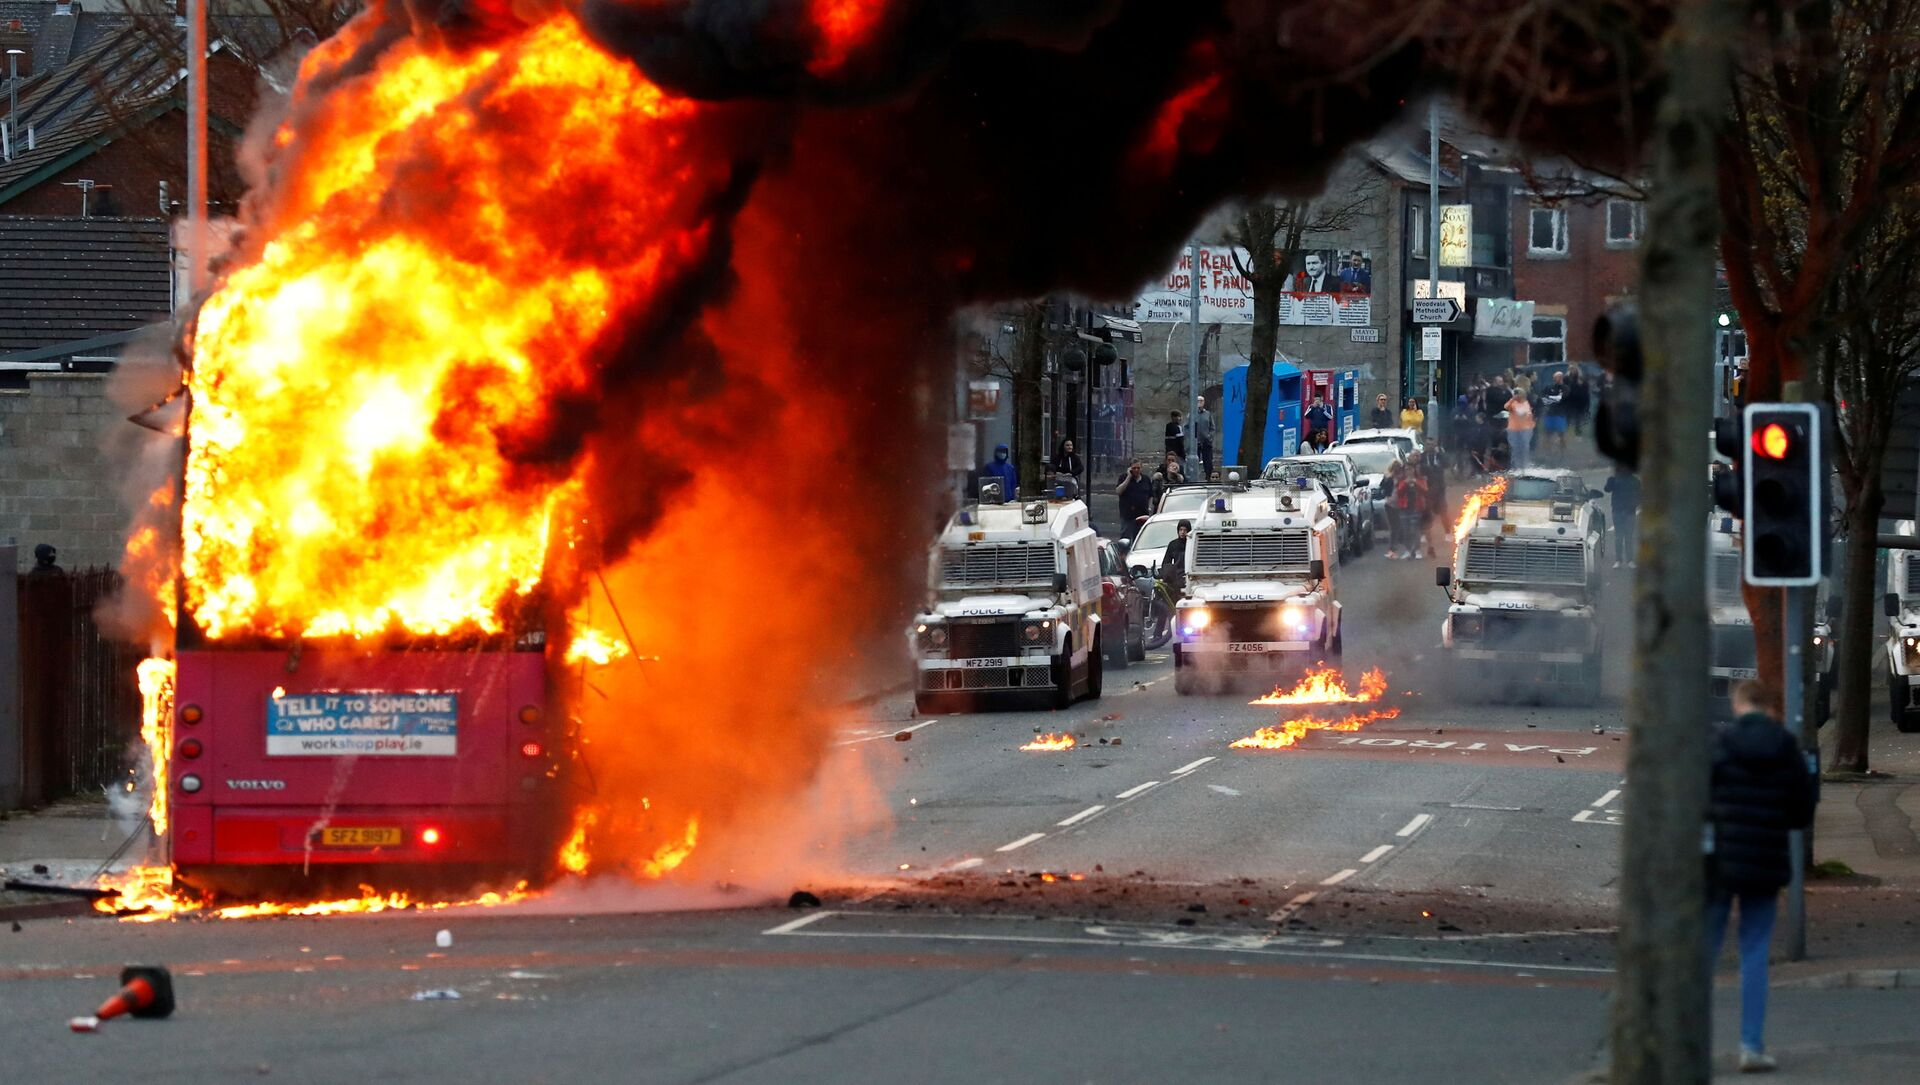 Police vehicles are seen behind a hijacked bus burns on the Shankill Road as protests continue in Belfast, Northern Ireland, 7 April 2021 - Sputnik International, 1920, 09.04.2021